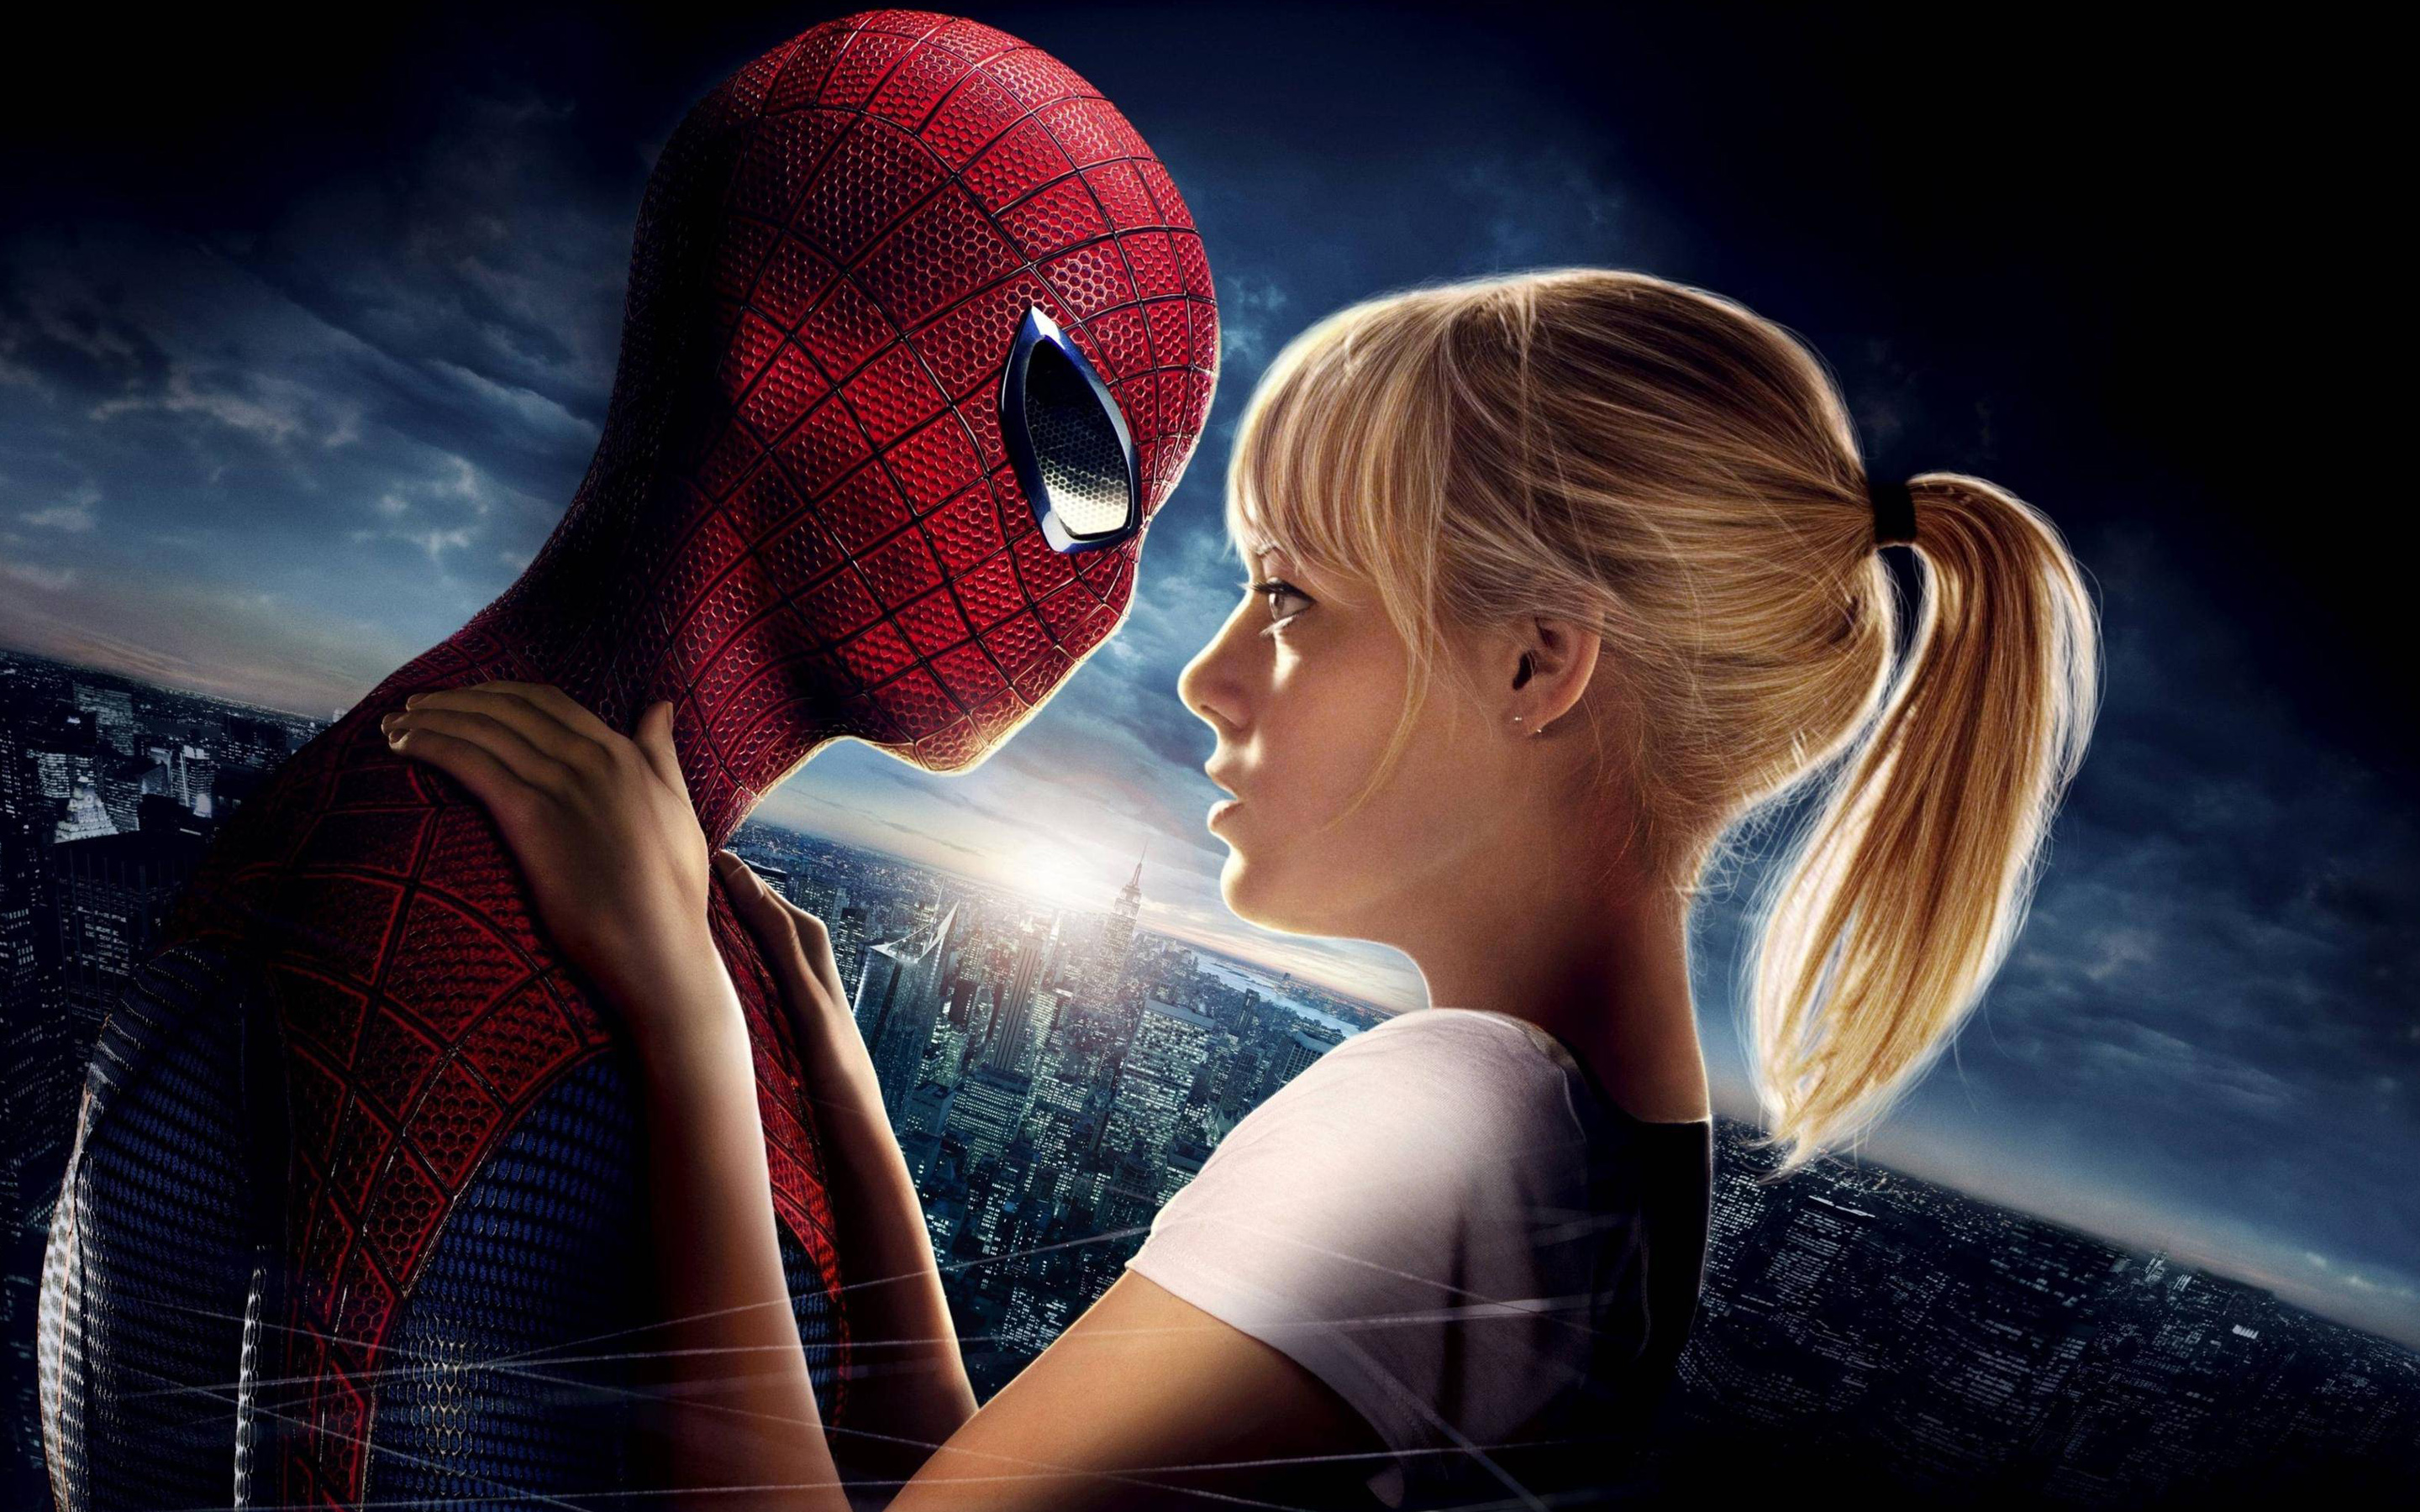 Amazing Spider Man Emma Stone 507.91 Kb